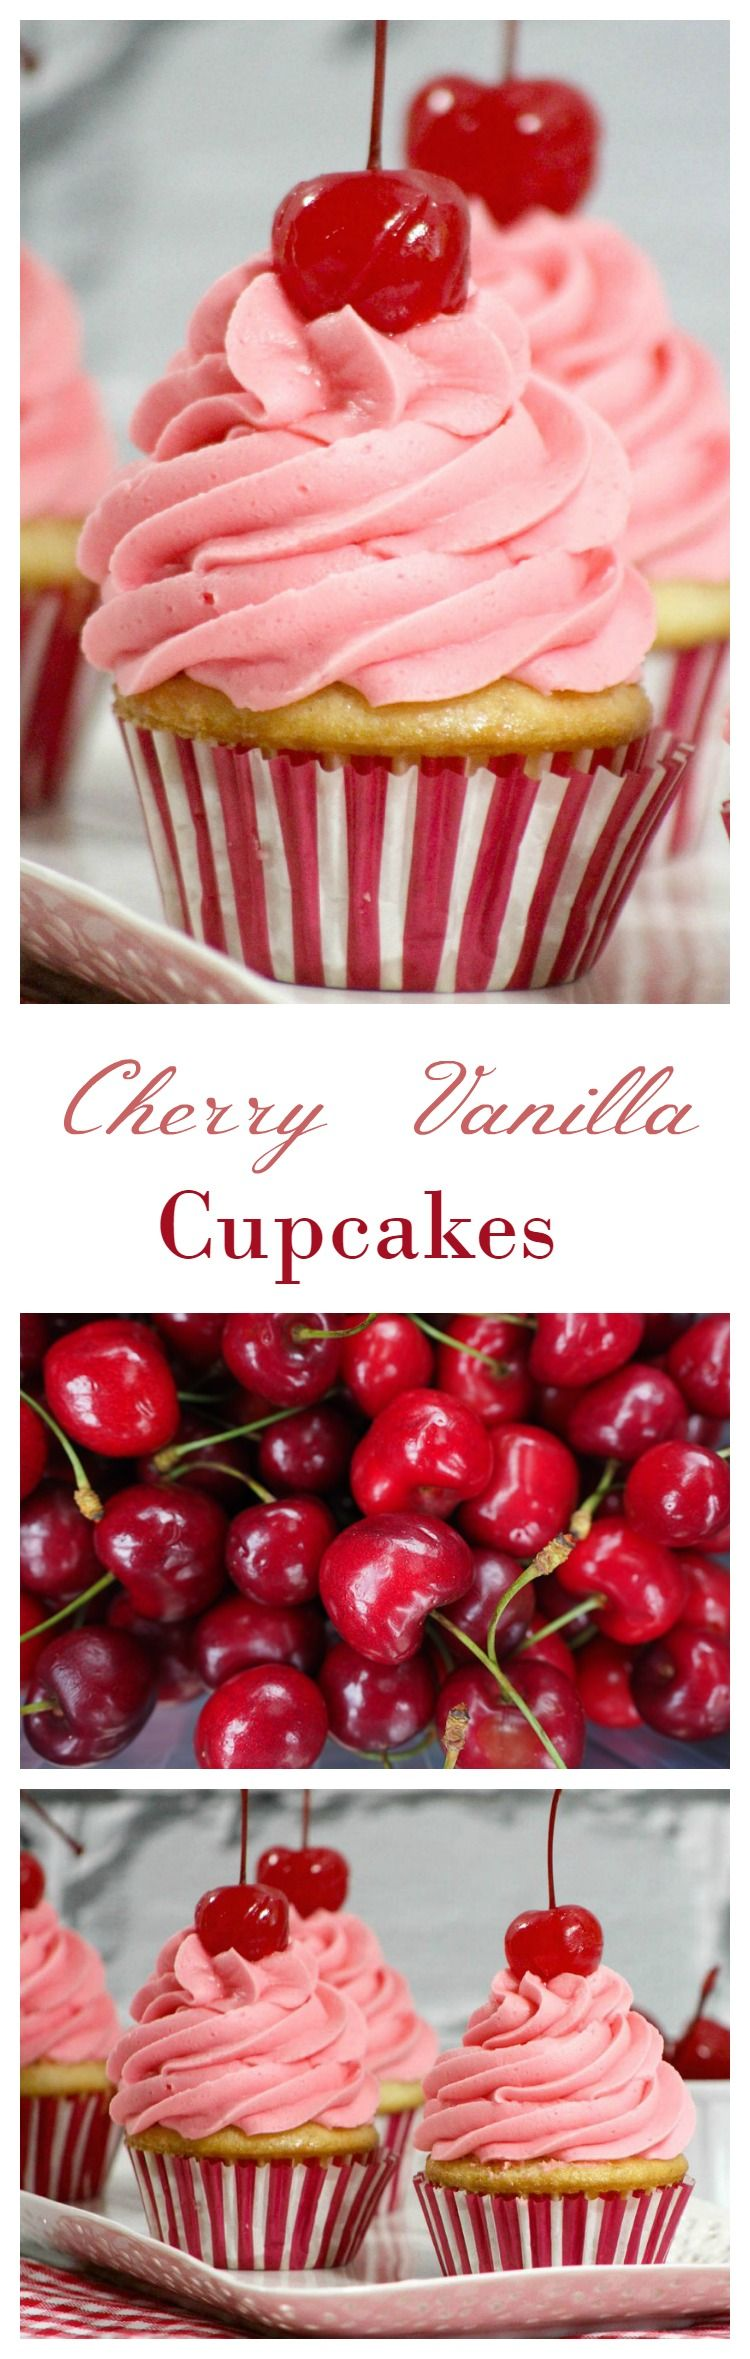 canada day recipe cherry vanilla cupcakes pinterest kakor. Black Bedroom Furniture Sets. Home Design Ideas